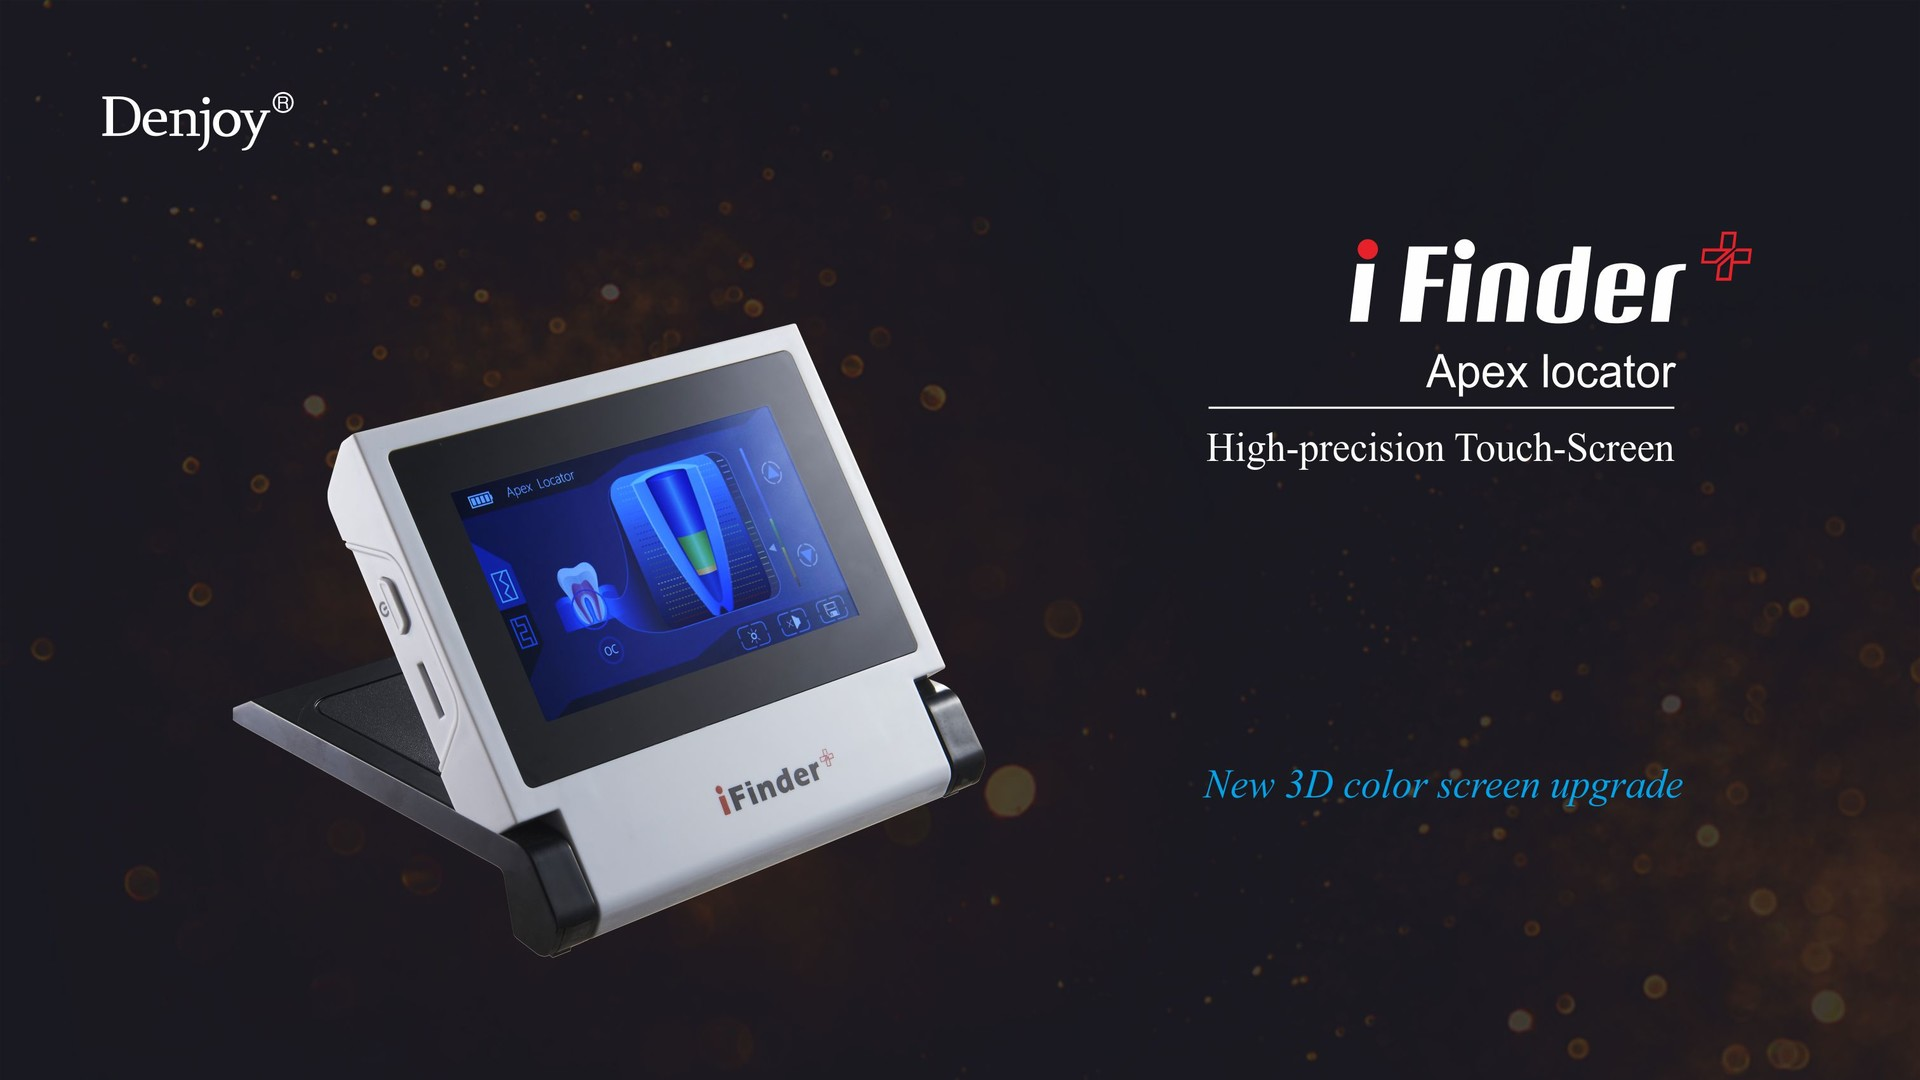 Denjoy High-precision Touch-screen Apex Locator-ifinder